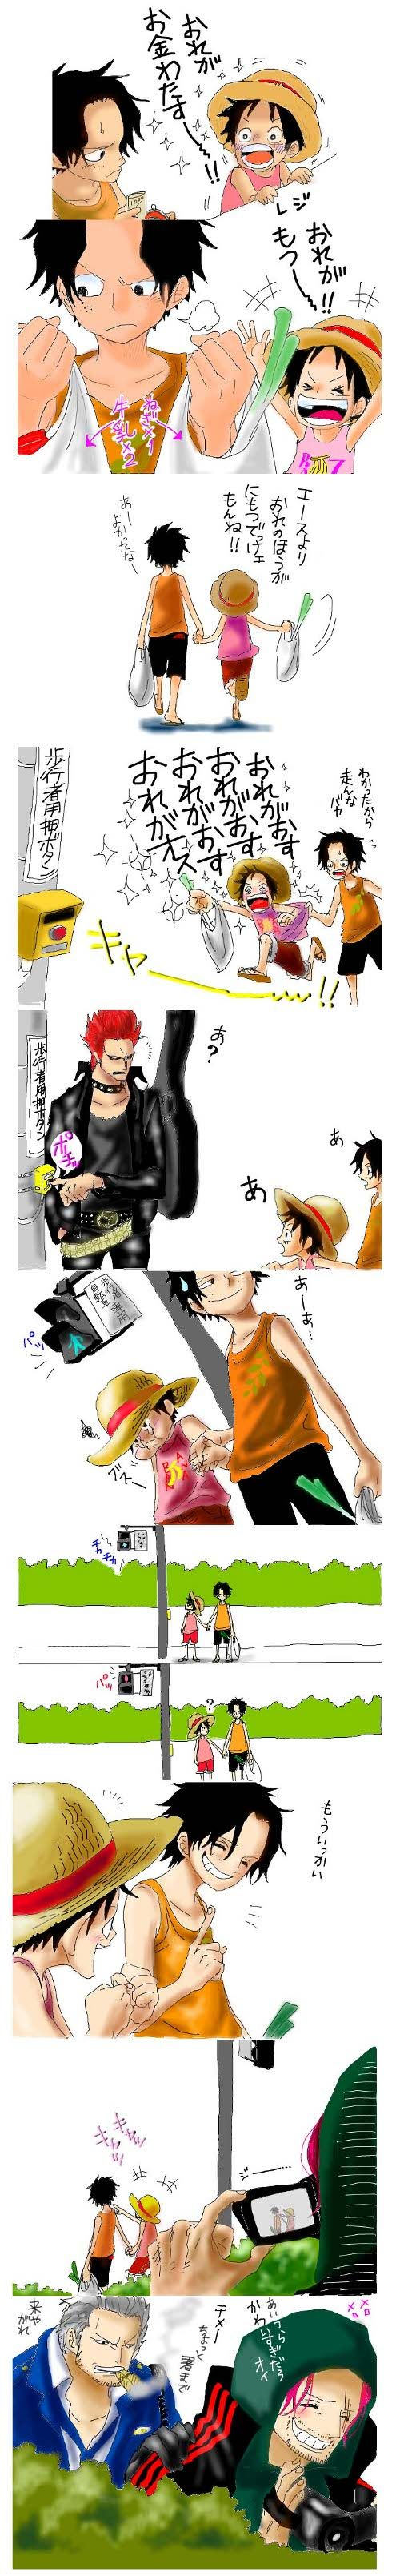 Ace & Luffy shopping, with baka father Shanks following them... then getting caught by officer Smoker hahaha ♡ - D. Brothers